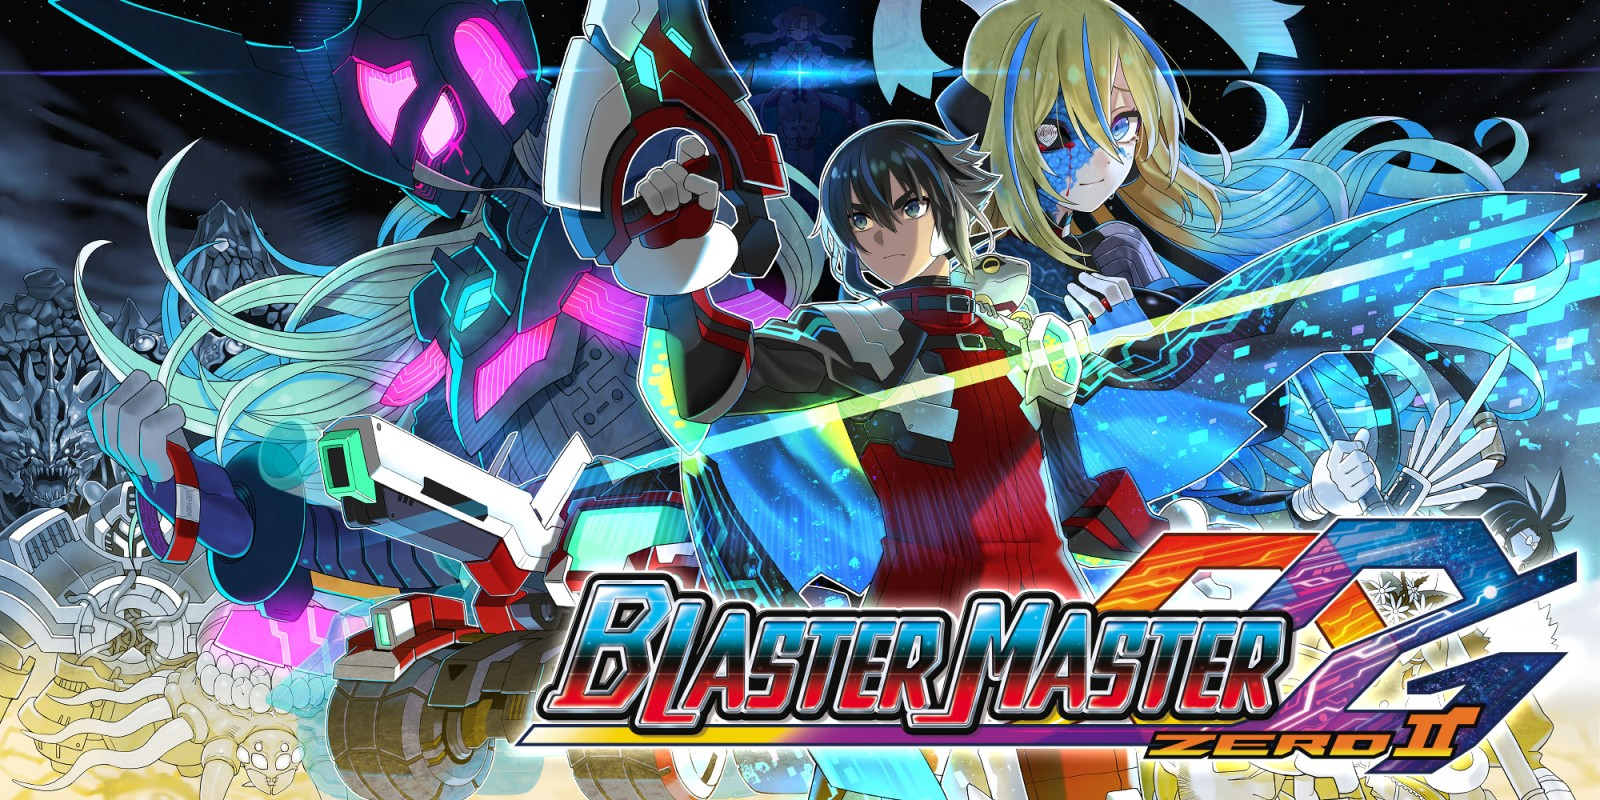 Interview from zero to hero creating a sequel with blaster master zero 2